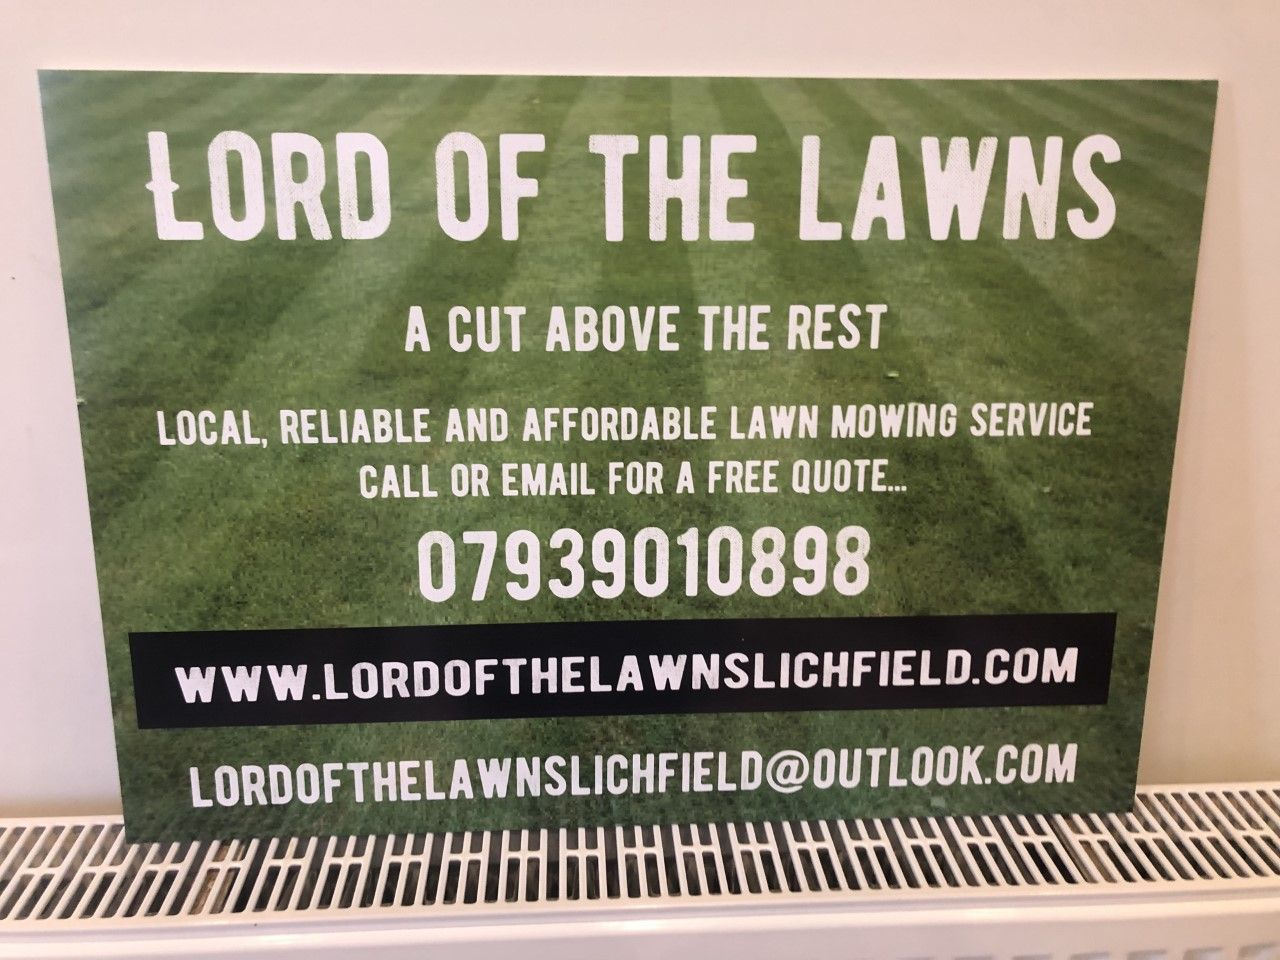 Pin by Lord of the lawns on Gardening Lawn care business